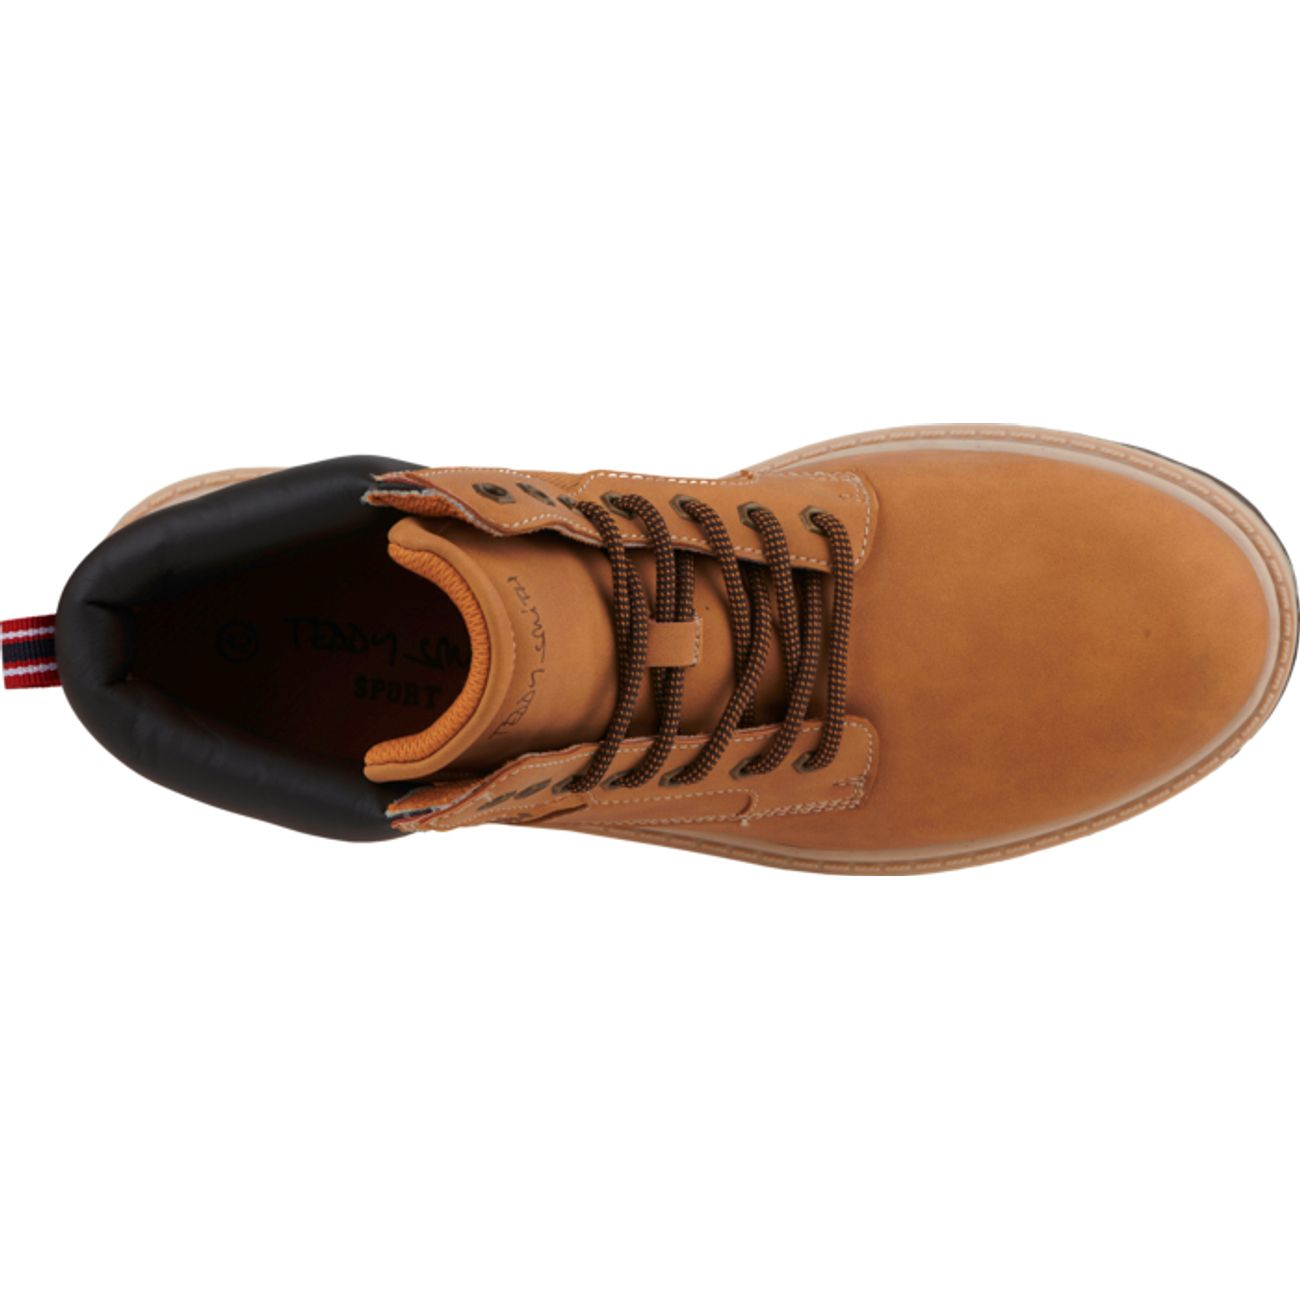 CHAUSSURES   TEDDY SMITH PRIME